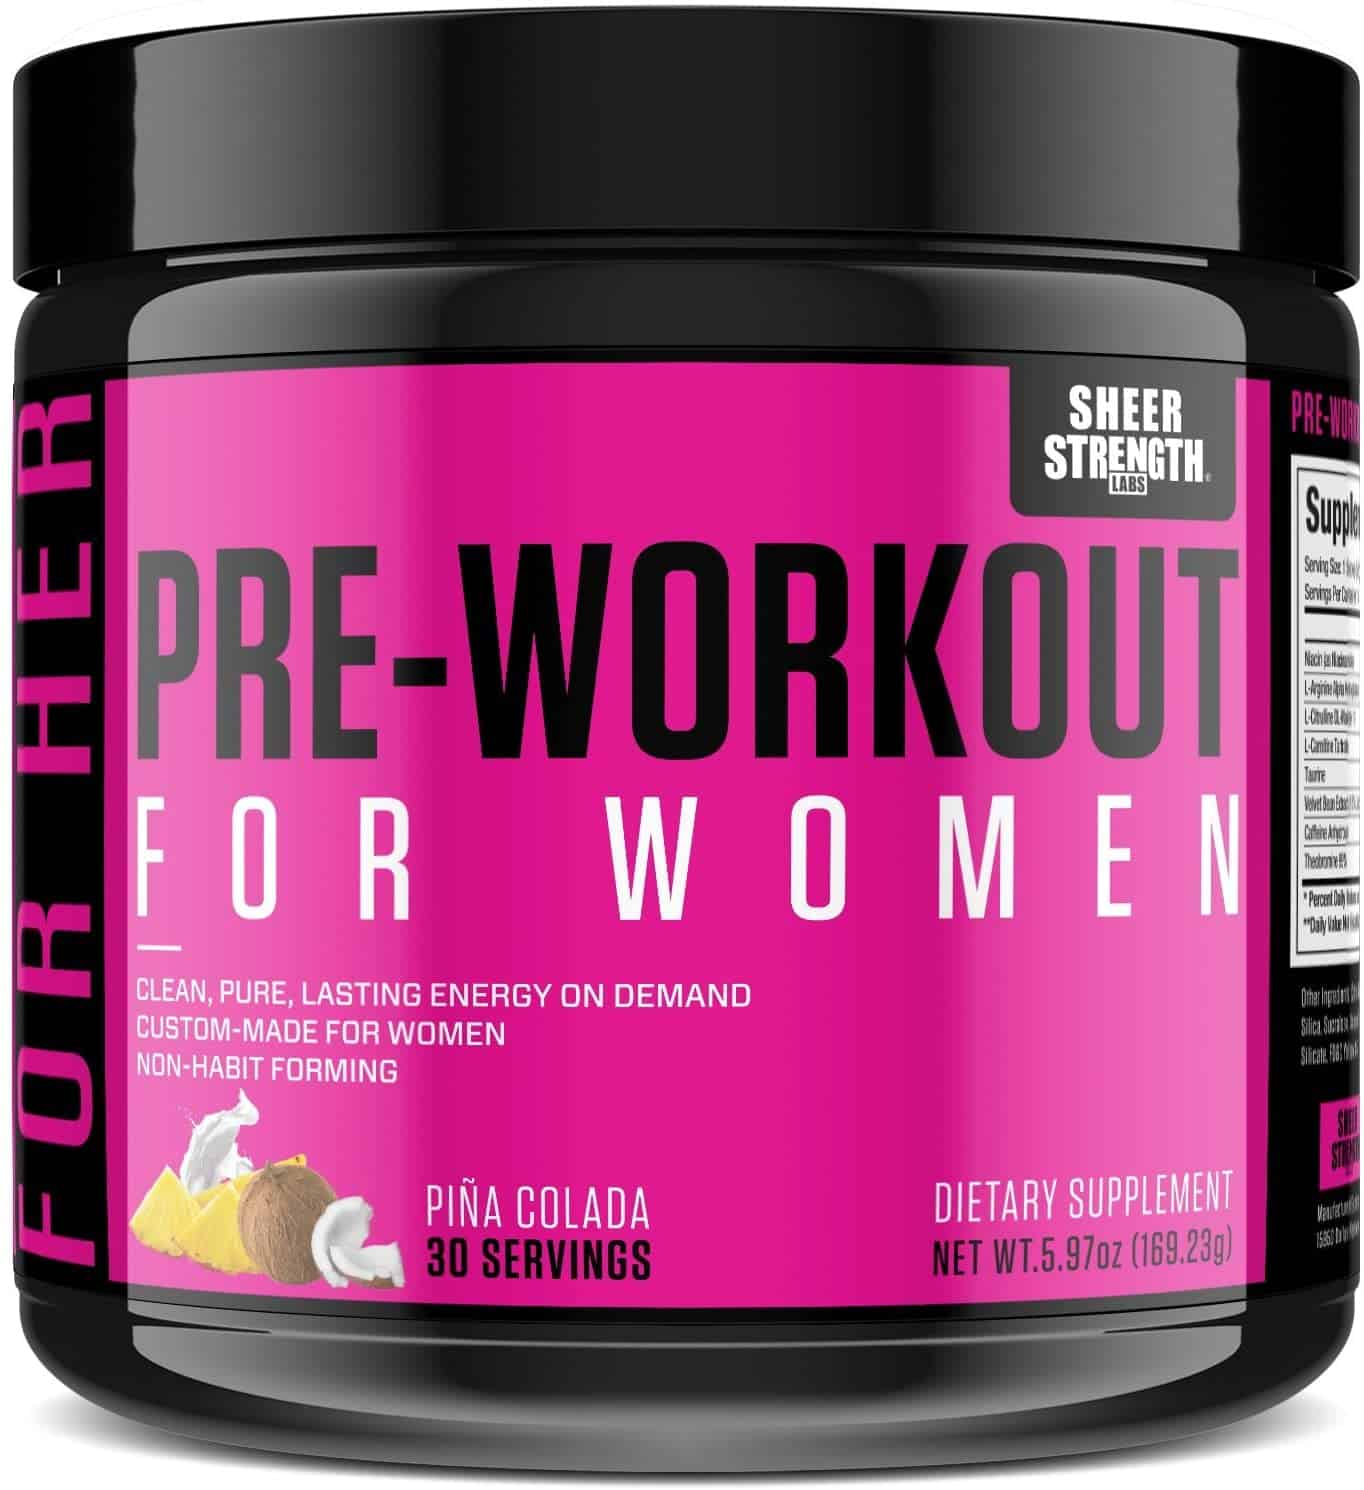 Photo of jar of sheer strength women's pre workout